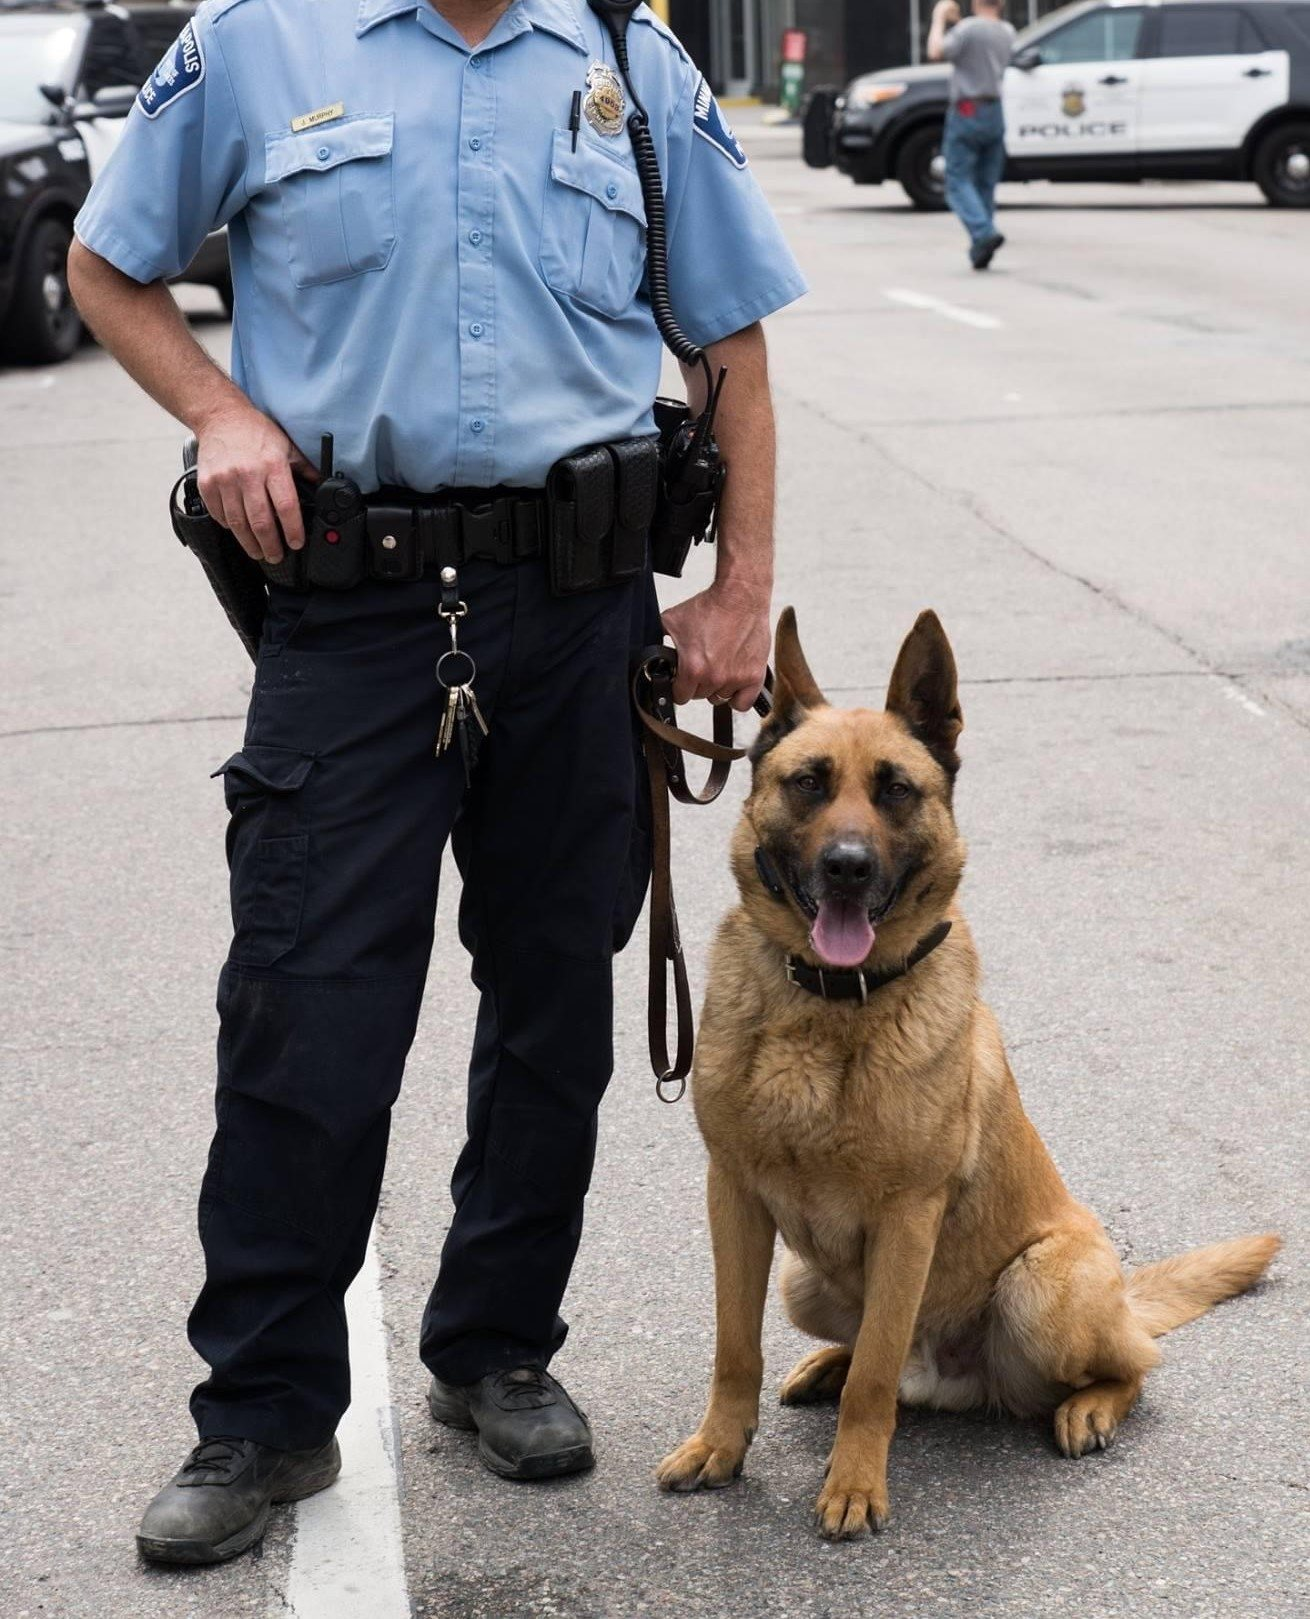 Canine and officer.